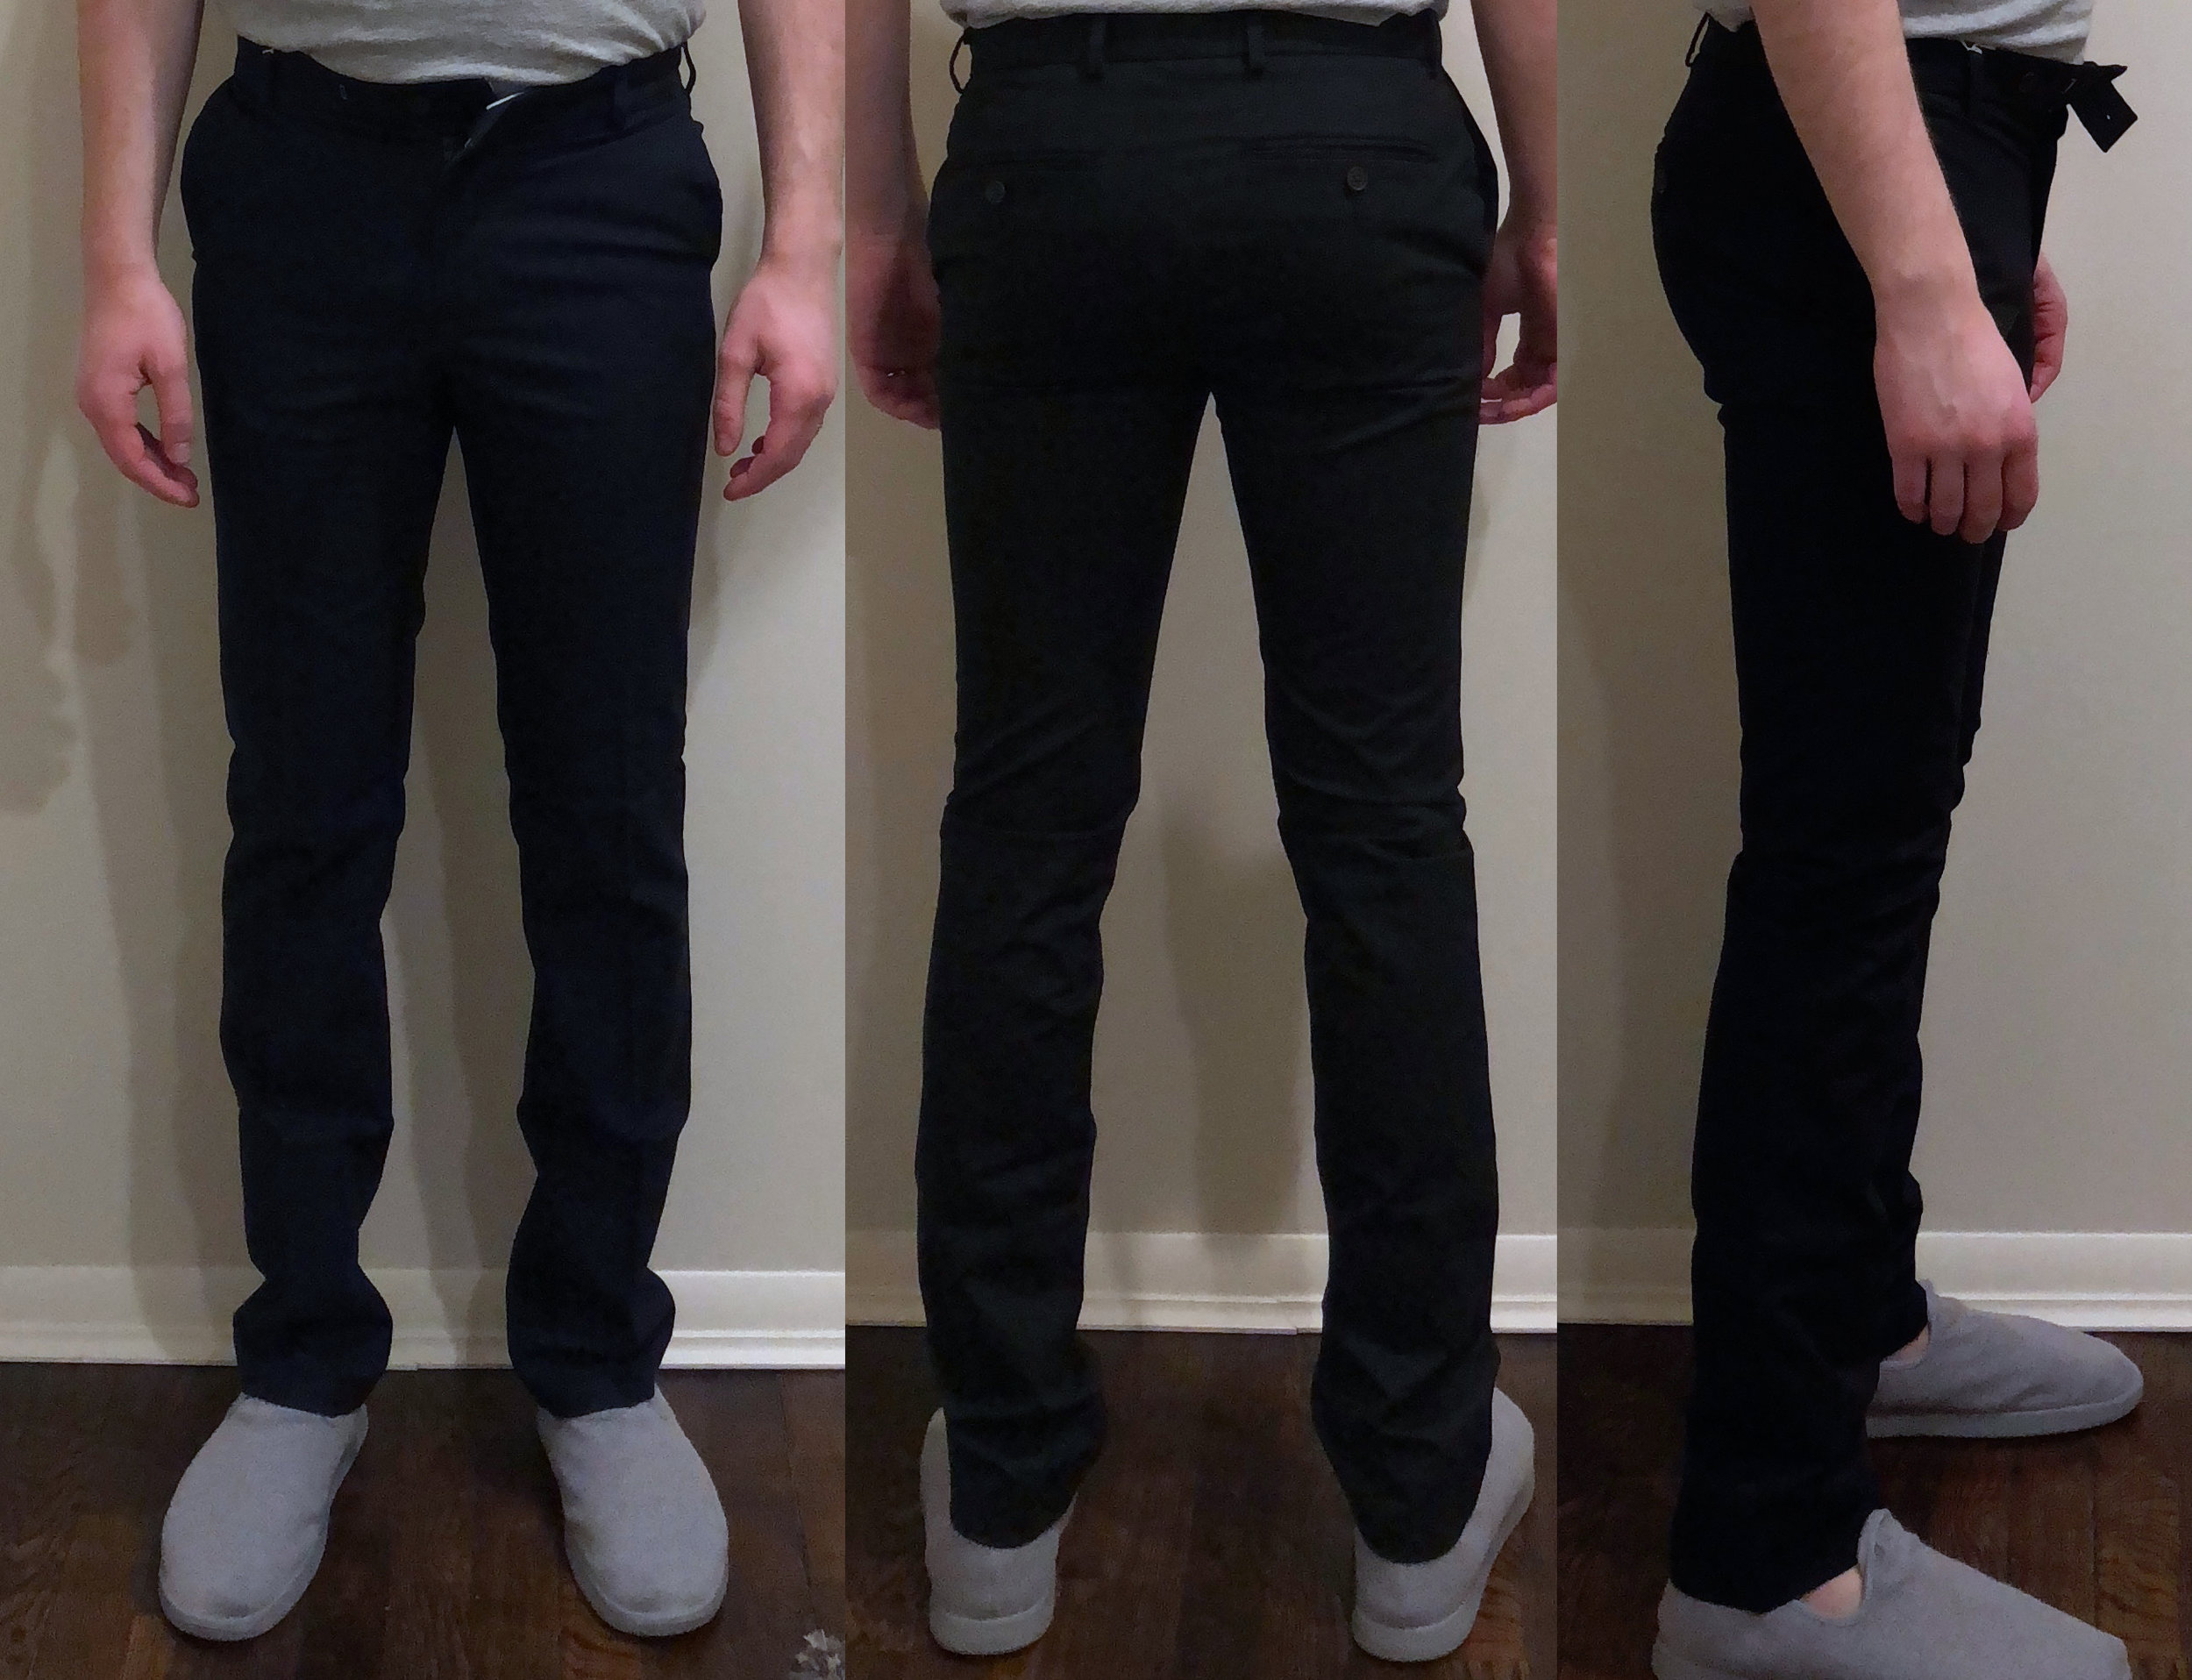 Chino fit pic (slippers by Allbirds)